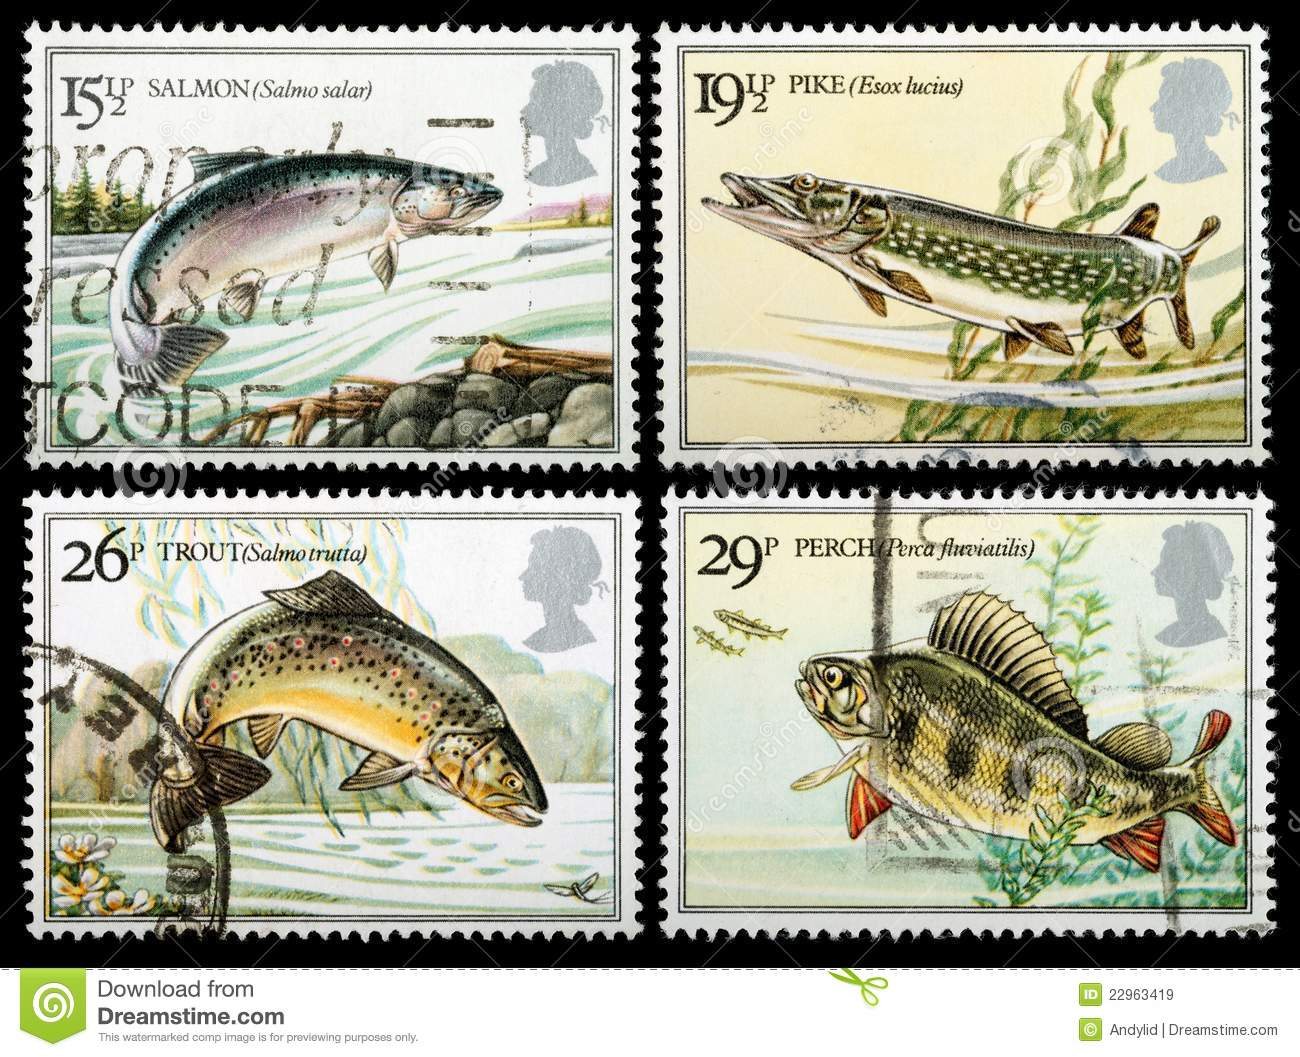 British river fish postage stamps royalty free stock for Fish symboled stamp